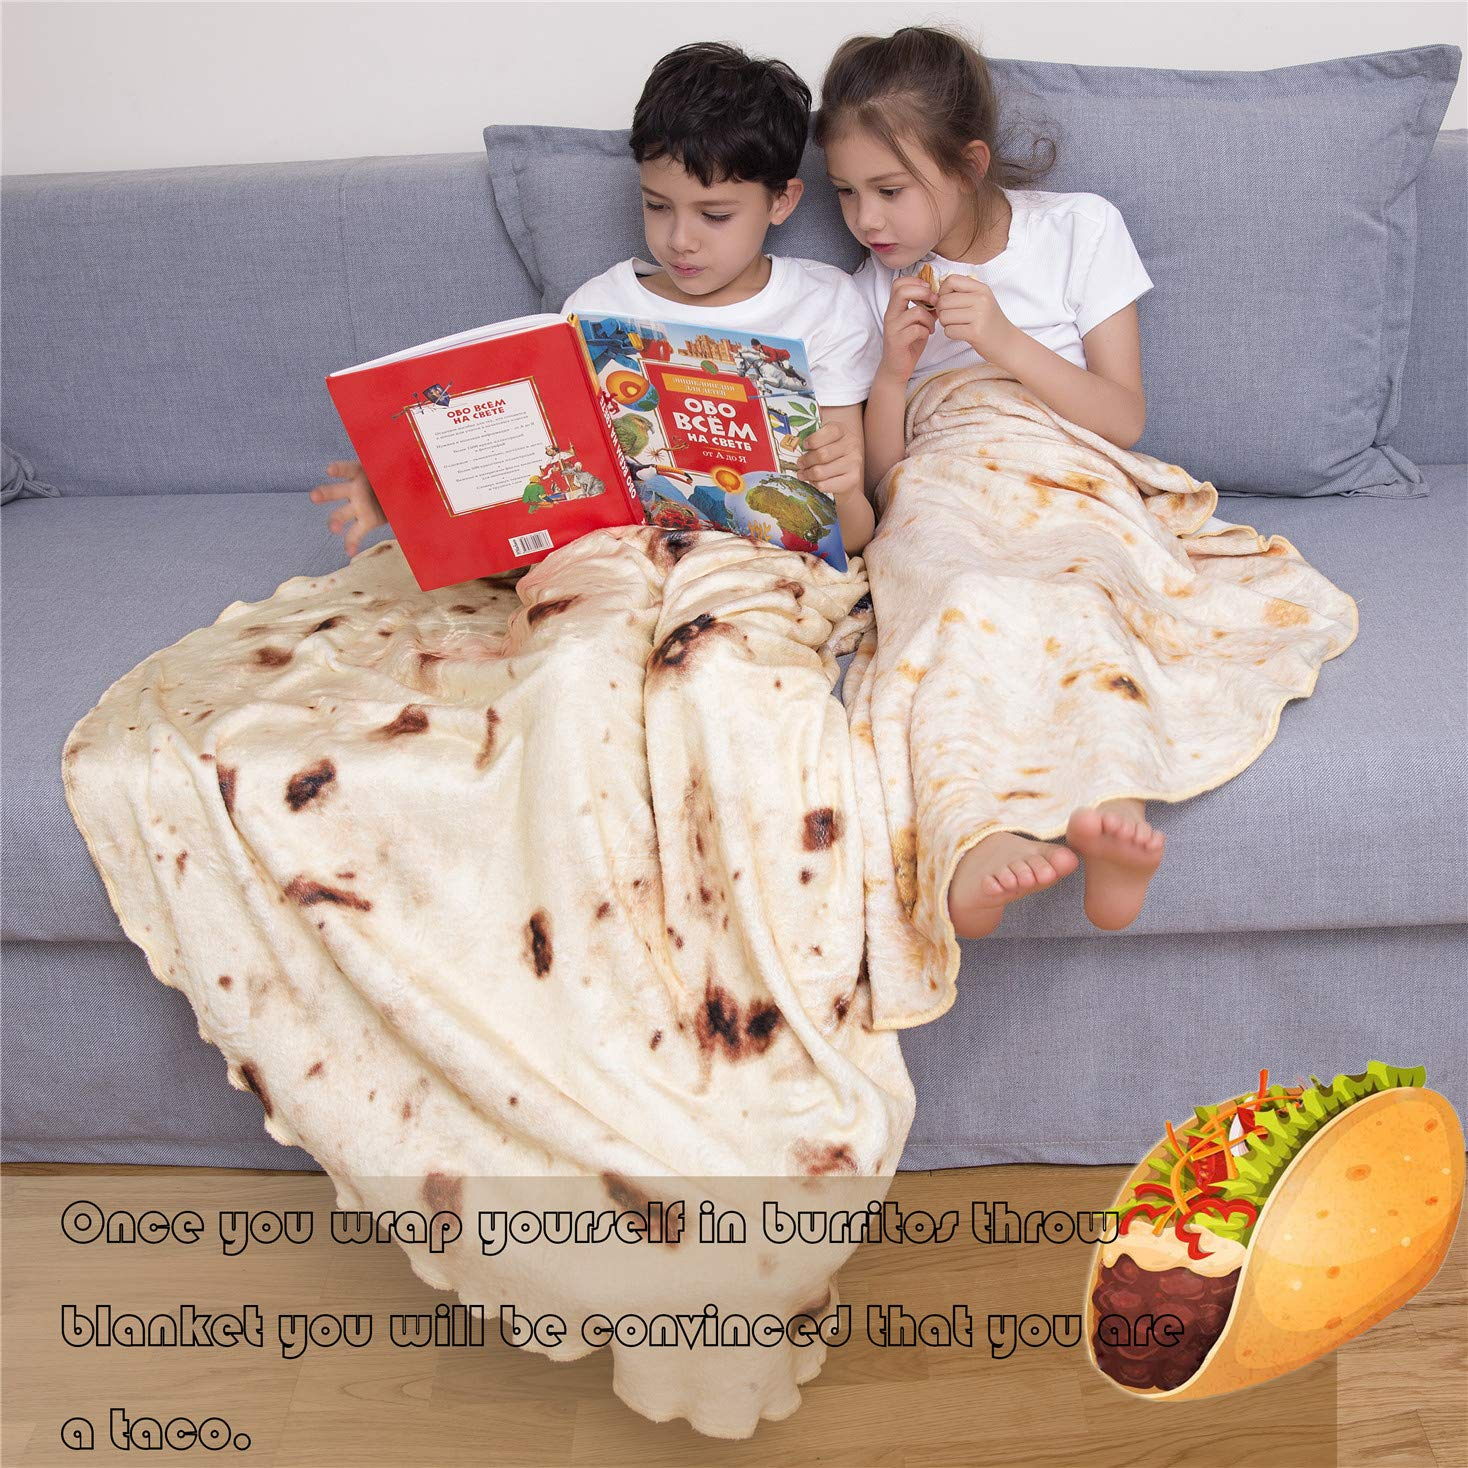 mermaker Burritos Tortilla Blanket, Realistic Burritos Wrap Giant Round Blanket, Novelty Soft Flannel Food Tortilla Blanket for Adults (80'' Diameter, Yellow-4) by mermaker (Image #6)